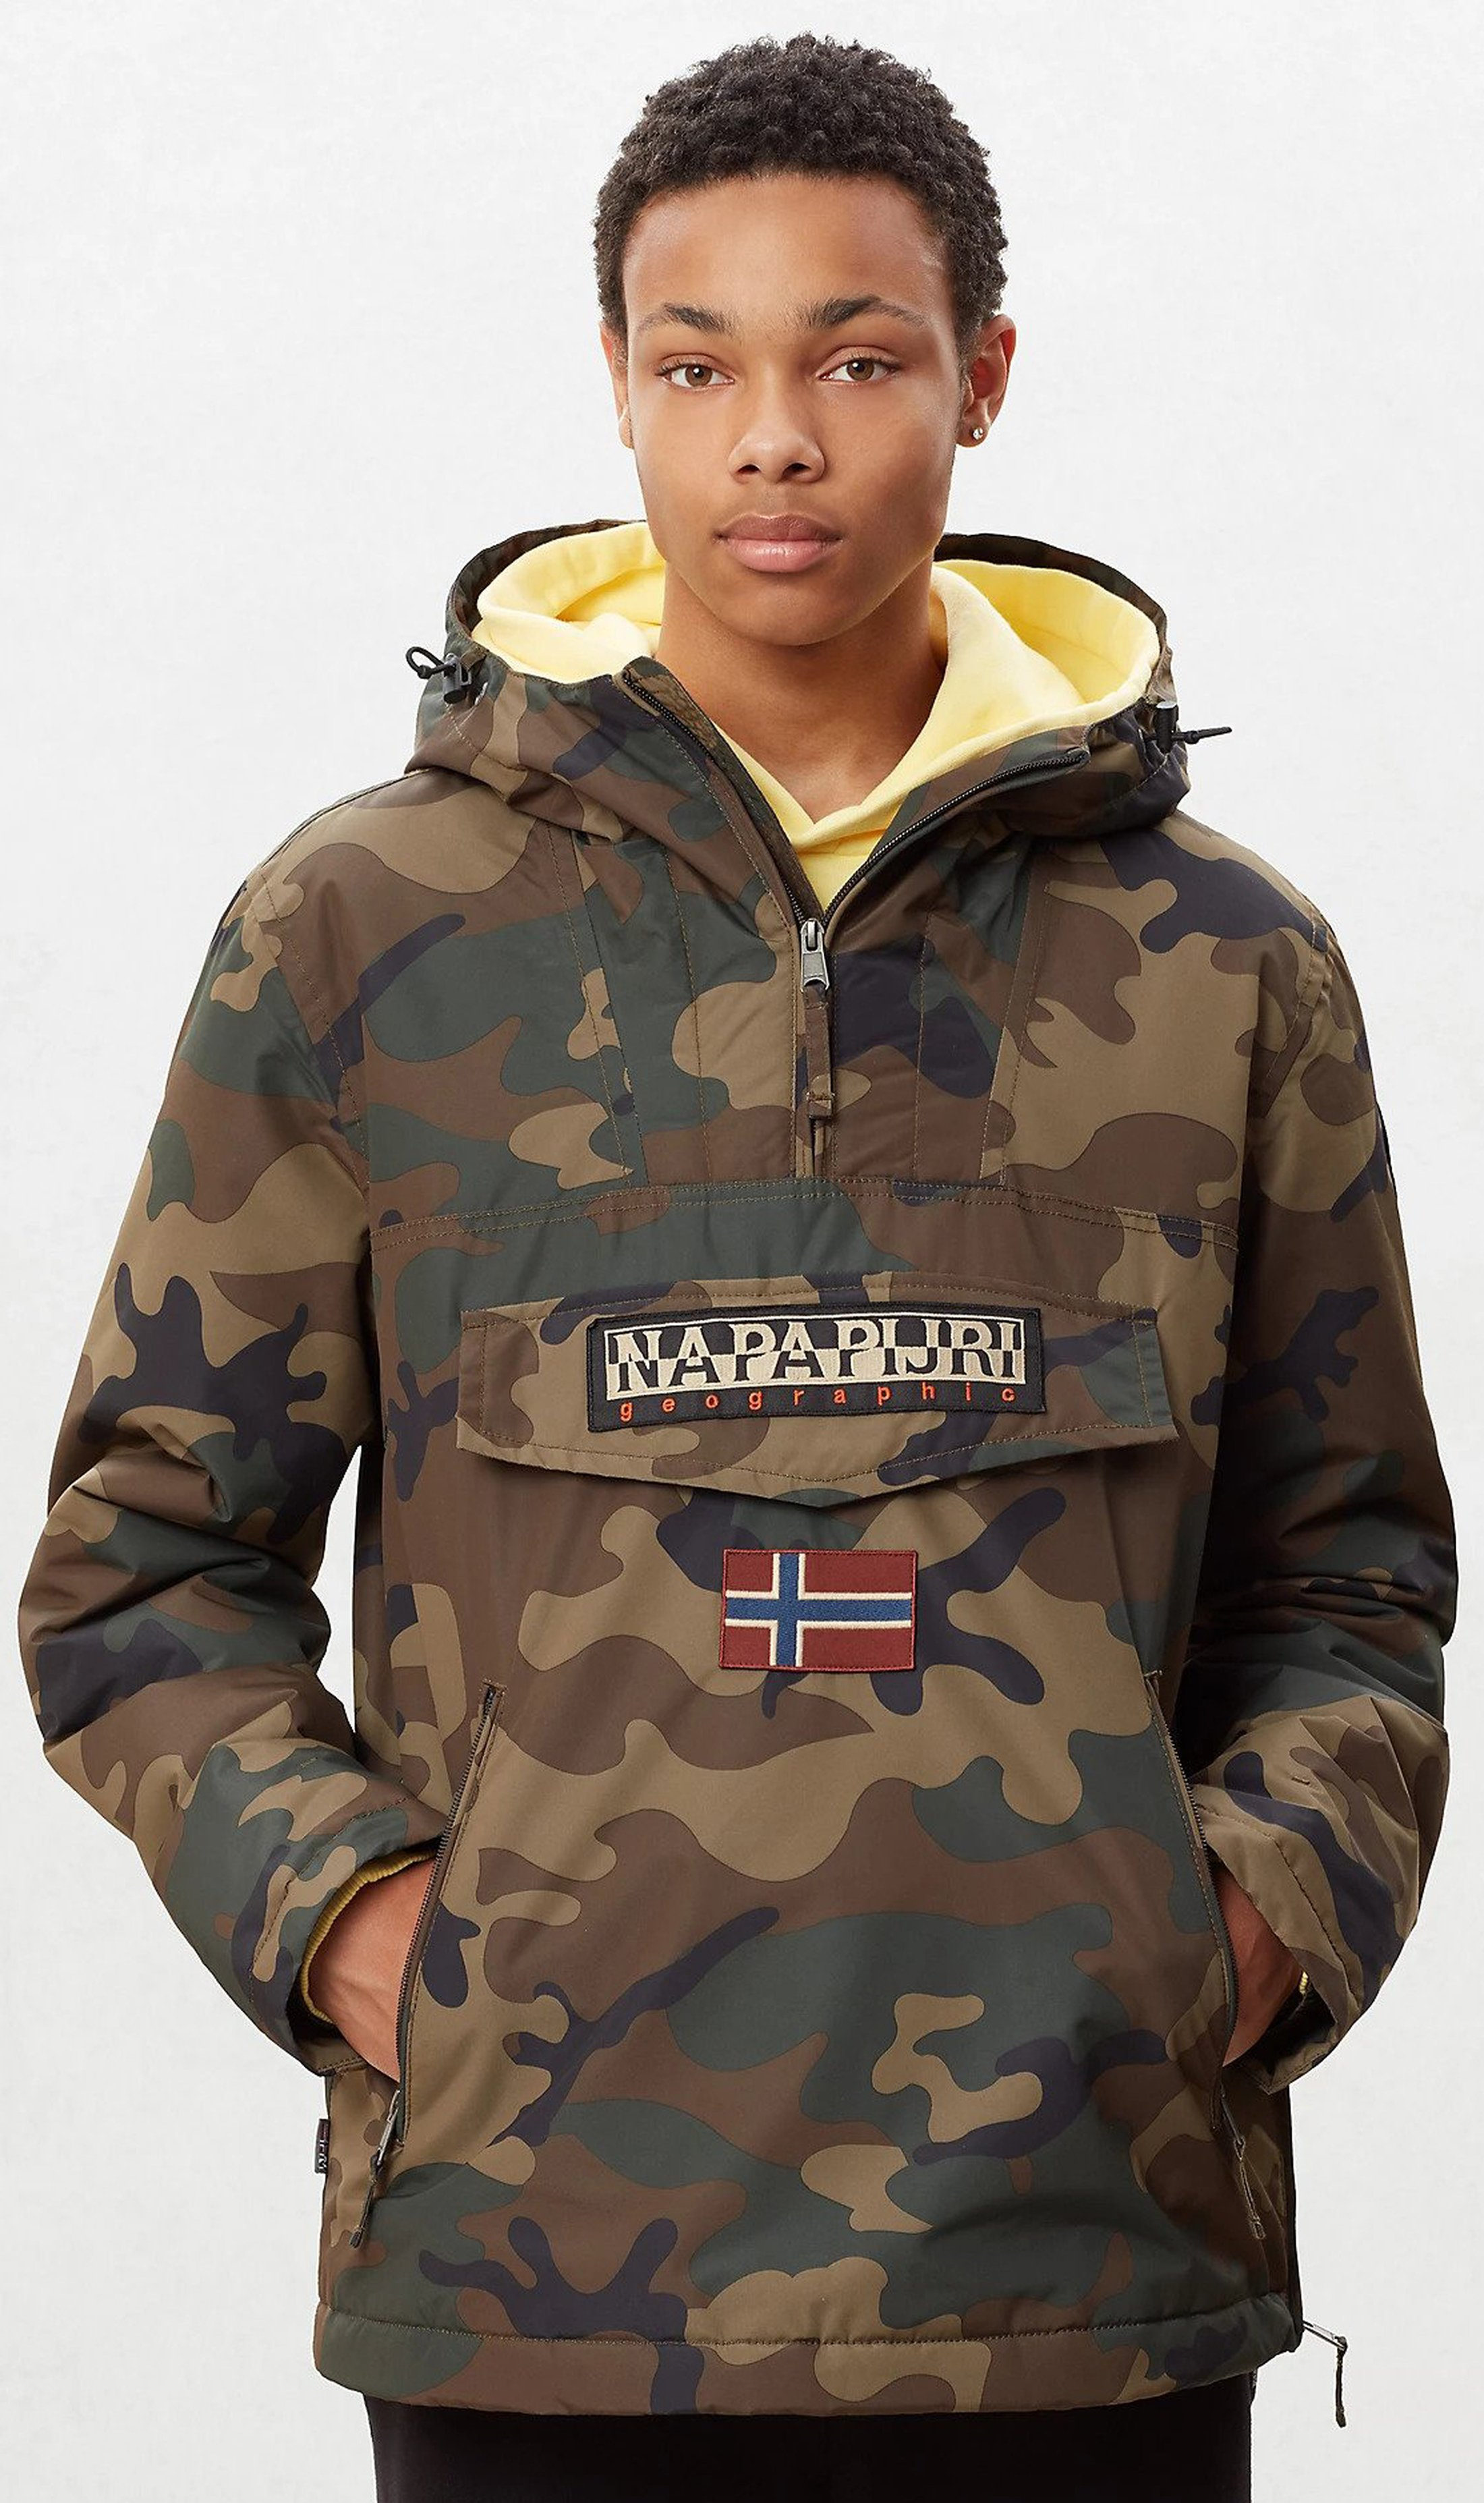 Napapijri Rainforest Anorak Pocket Camo foto 7